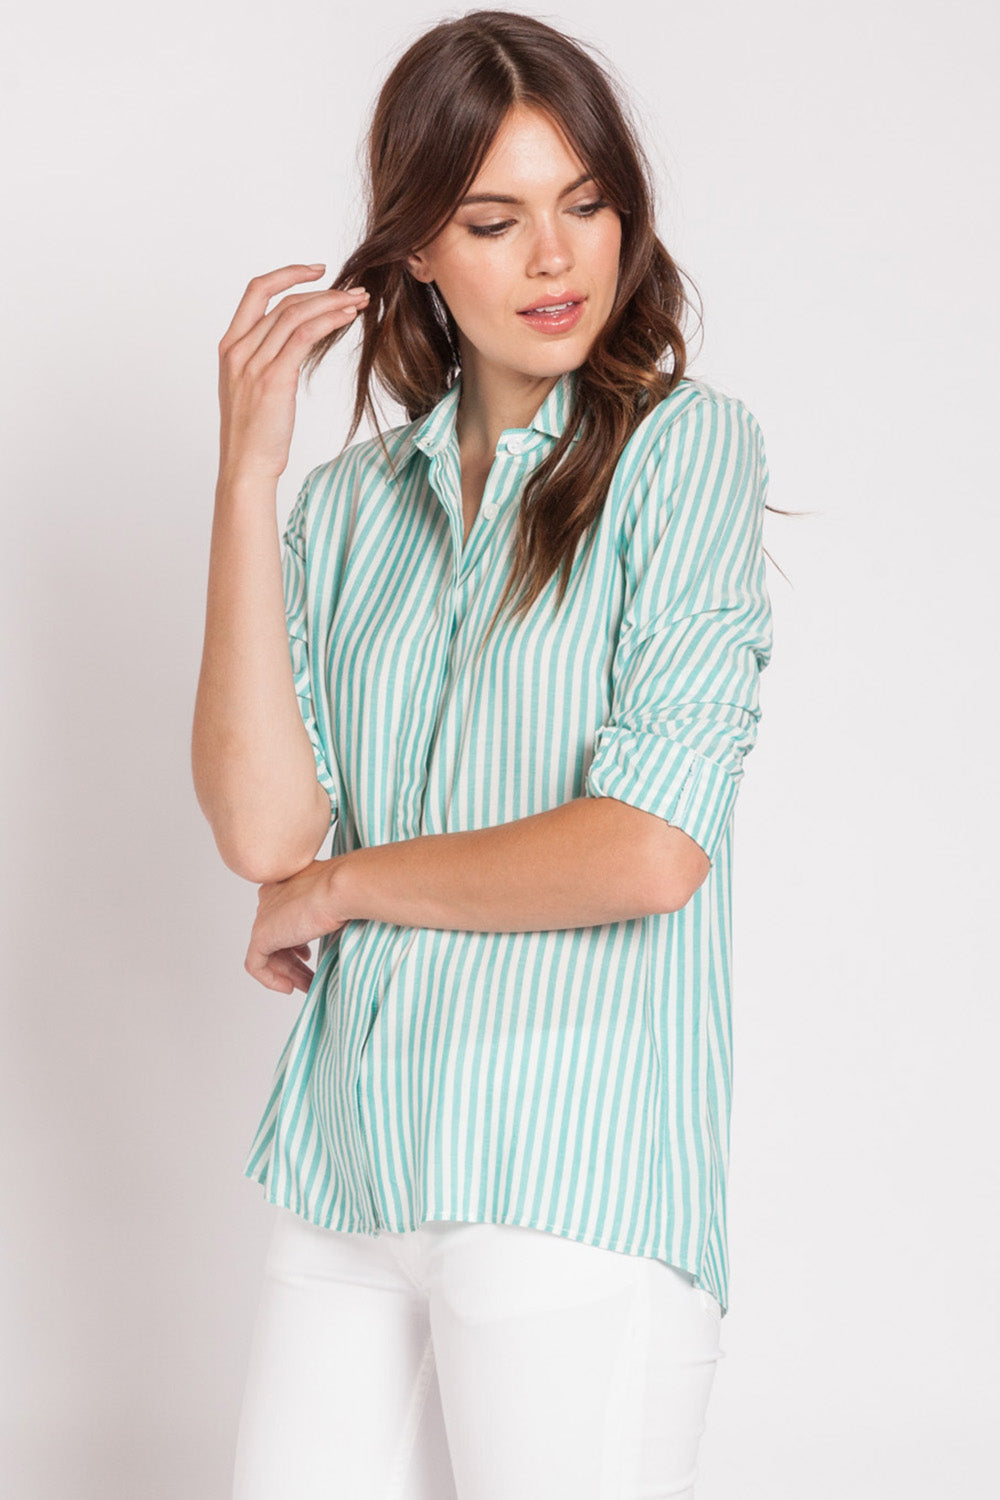 Green and White Button Up Blouse